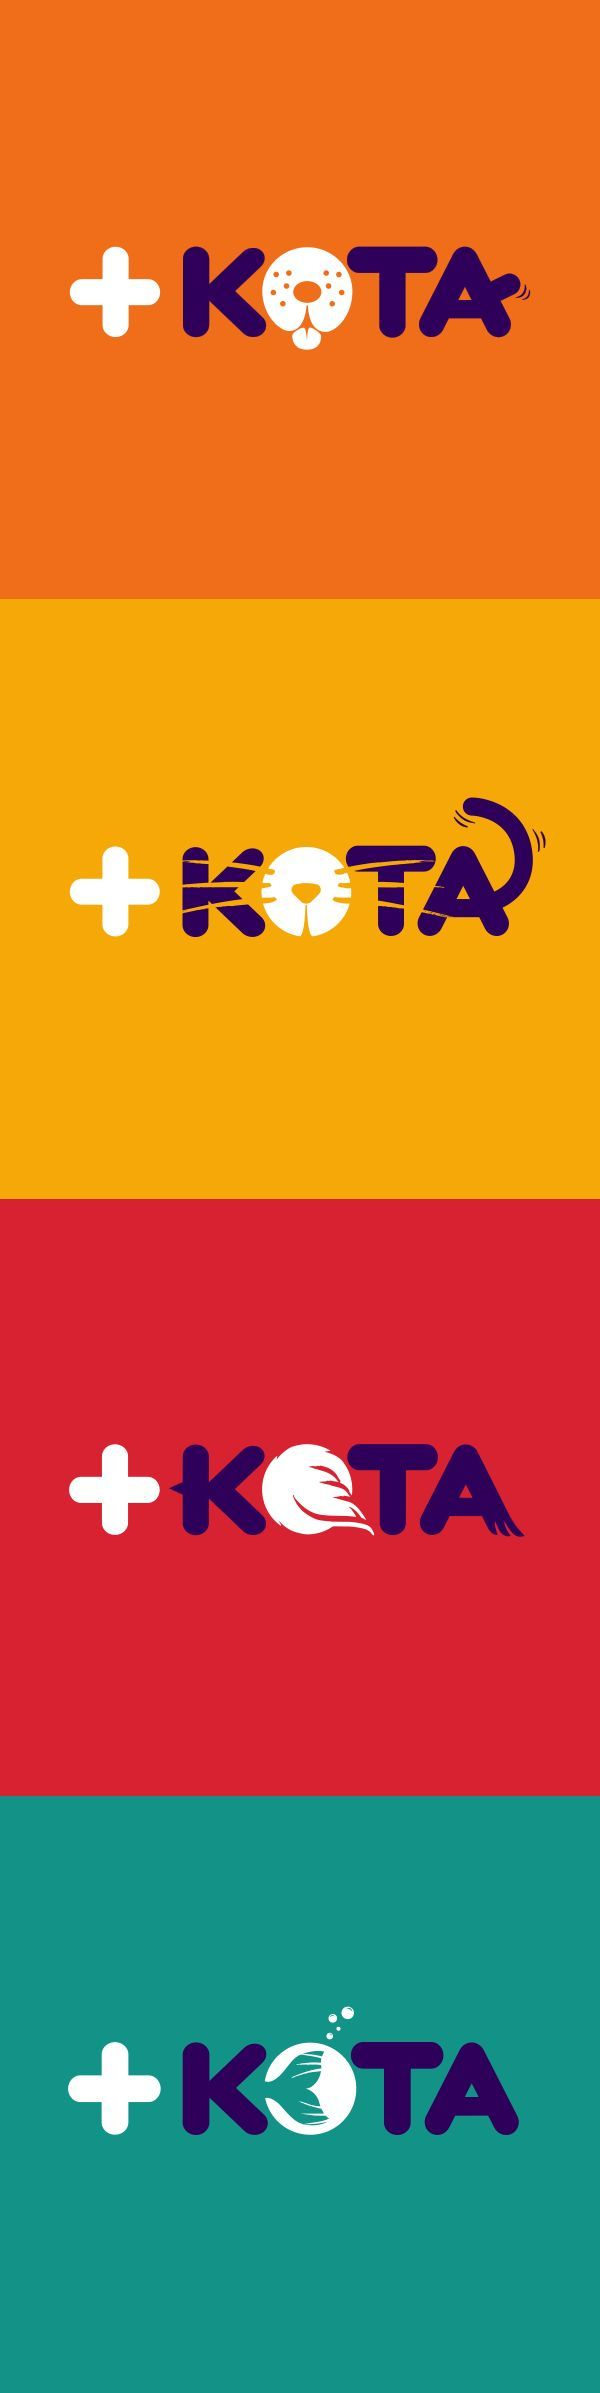 +Kota (reads maskota) is the spanish word for Pet. This is the most important store chain of animals and accessories in Mexico. This is a highly recognized and memorized brand logo without an advertising budget. Typography has details that precisely communicate the personality of dogs, cats, birds and fish. One of our more visible and successful projects.